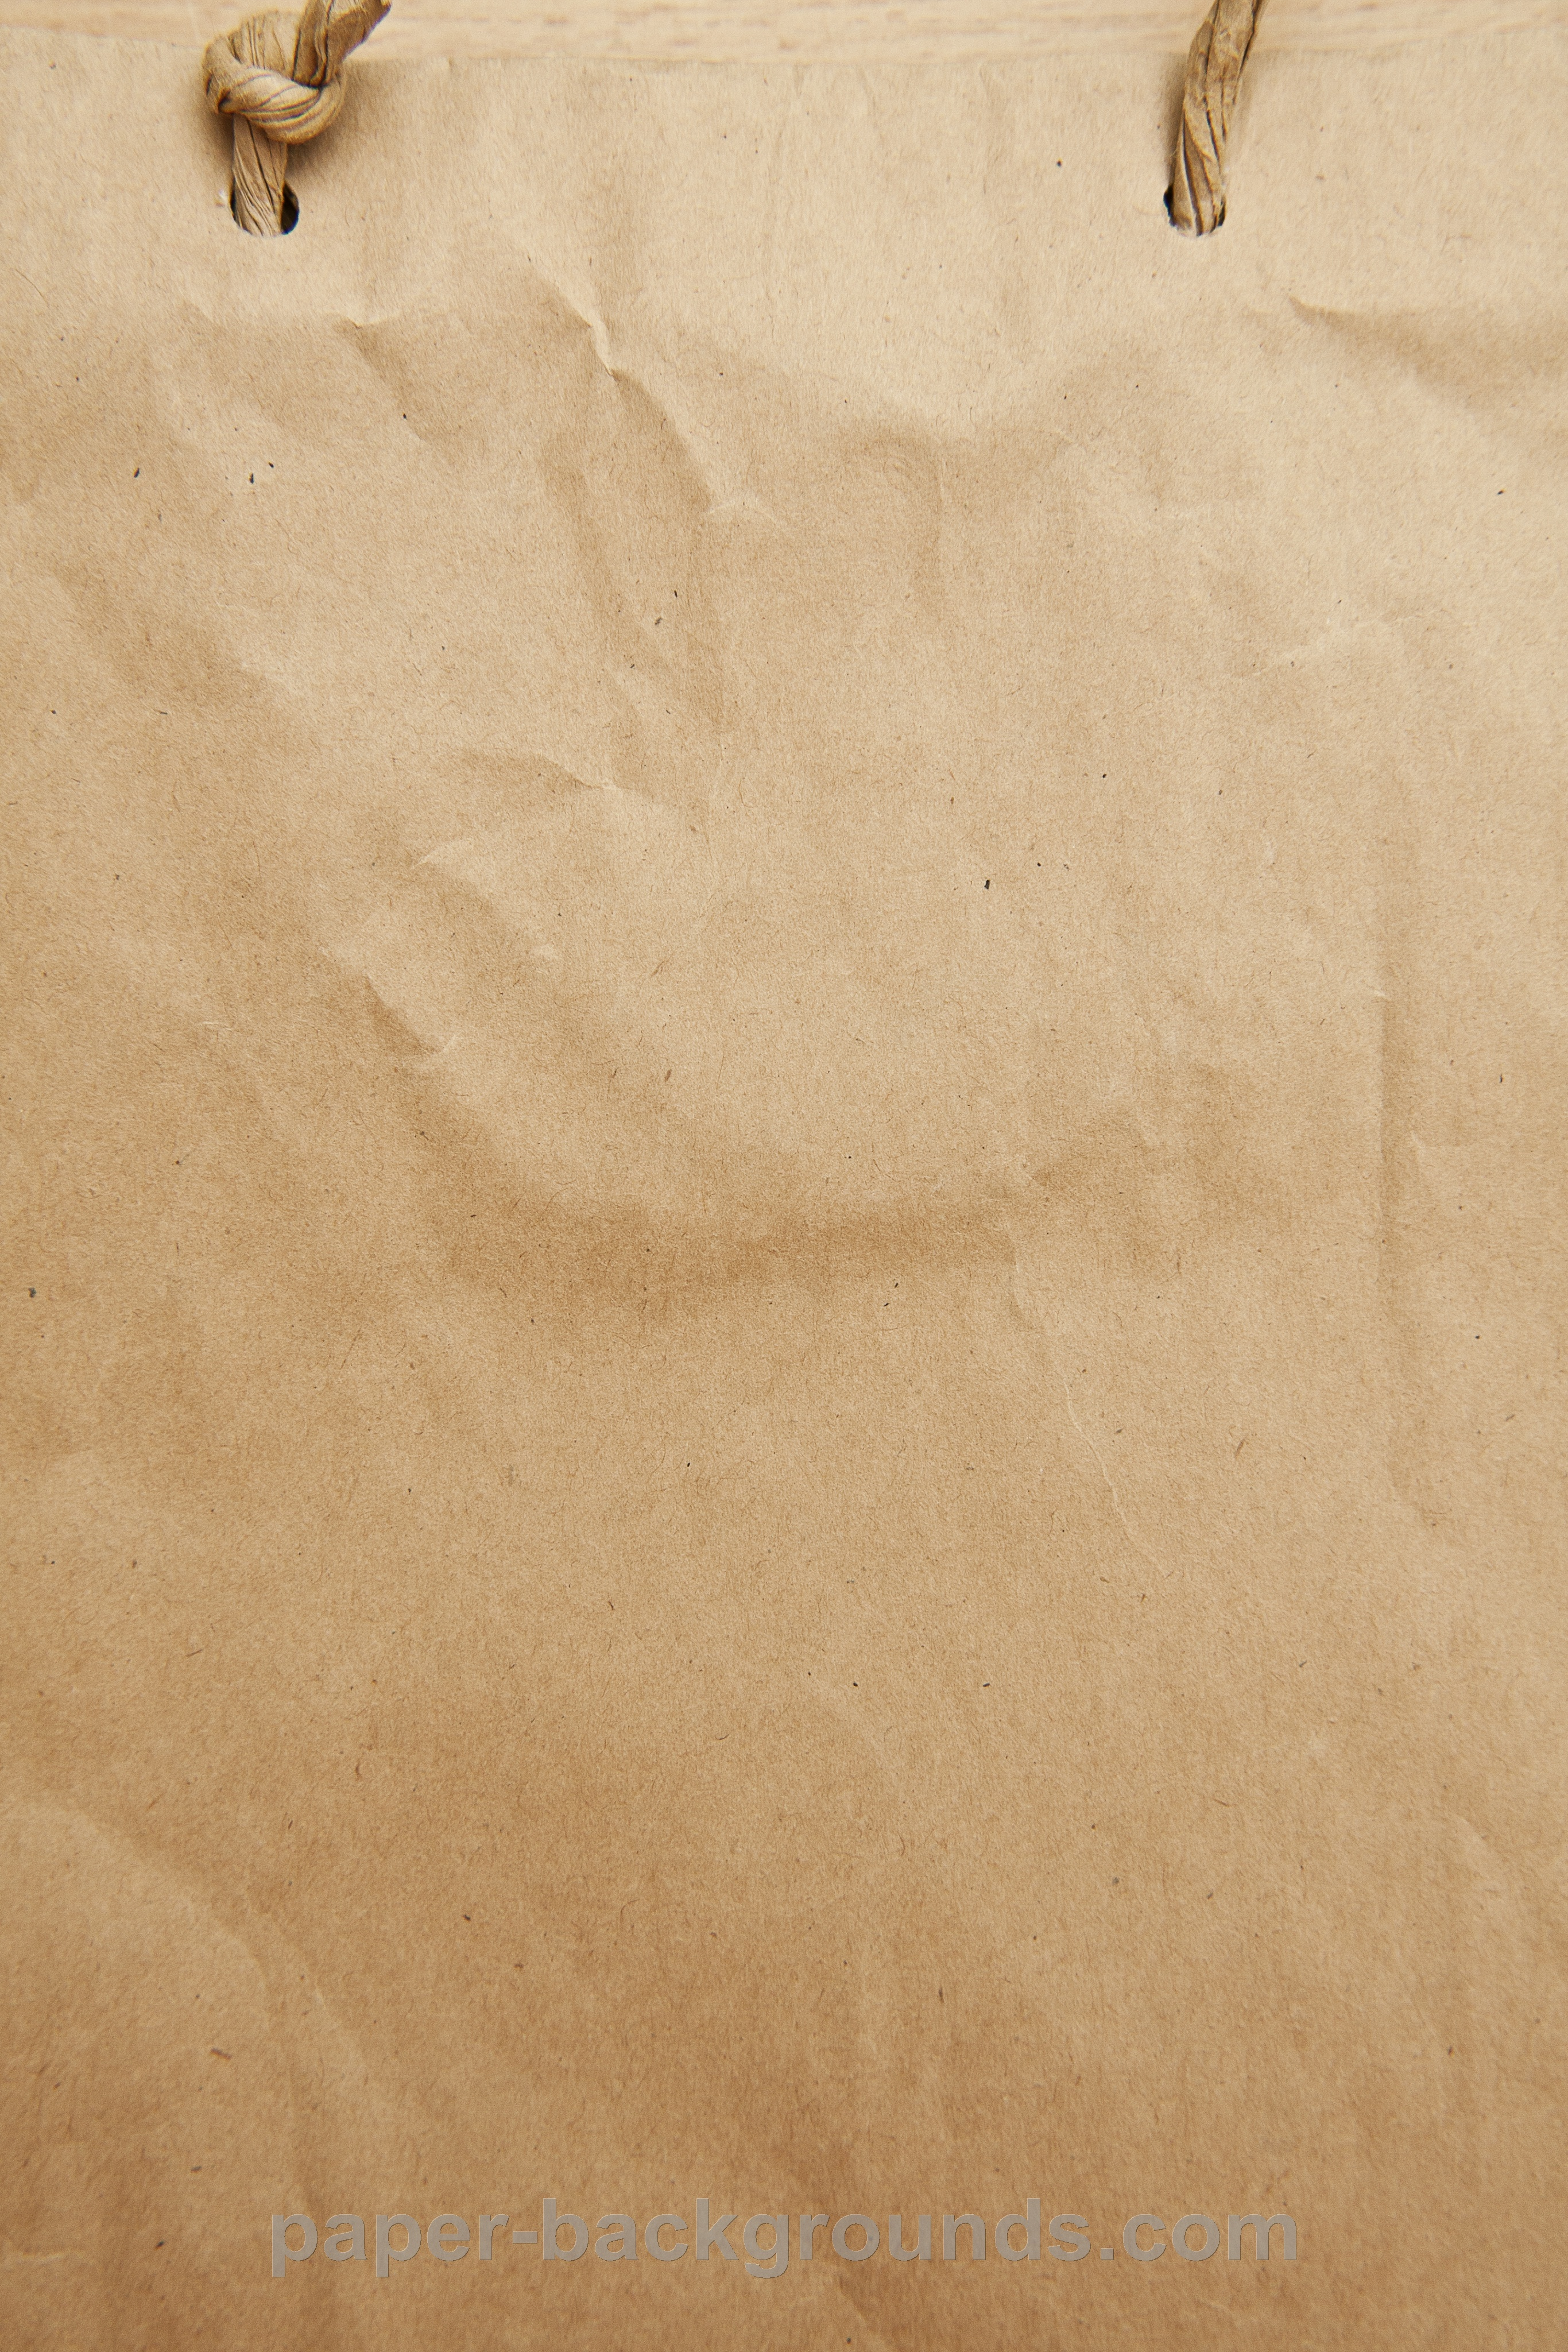 Free Brown Paper Bag Texture  High Resolution 2731 x 4096 pixels    Brown Paper Texture